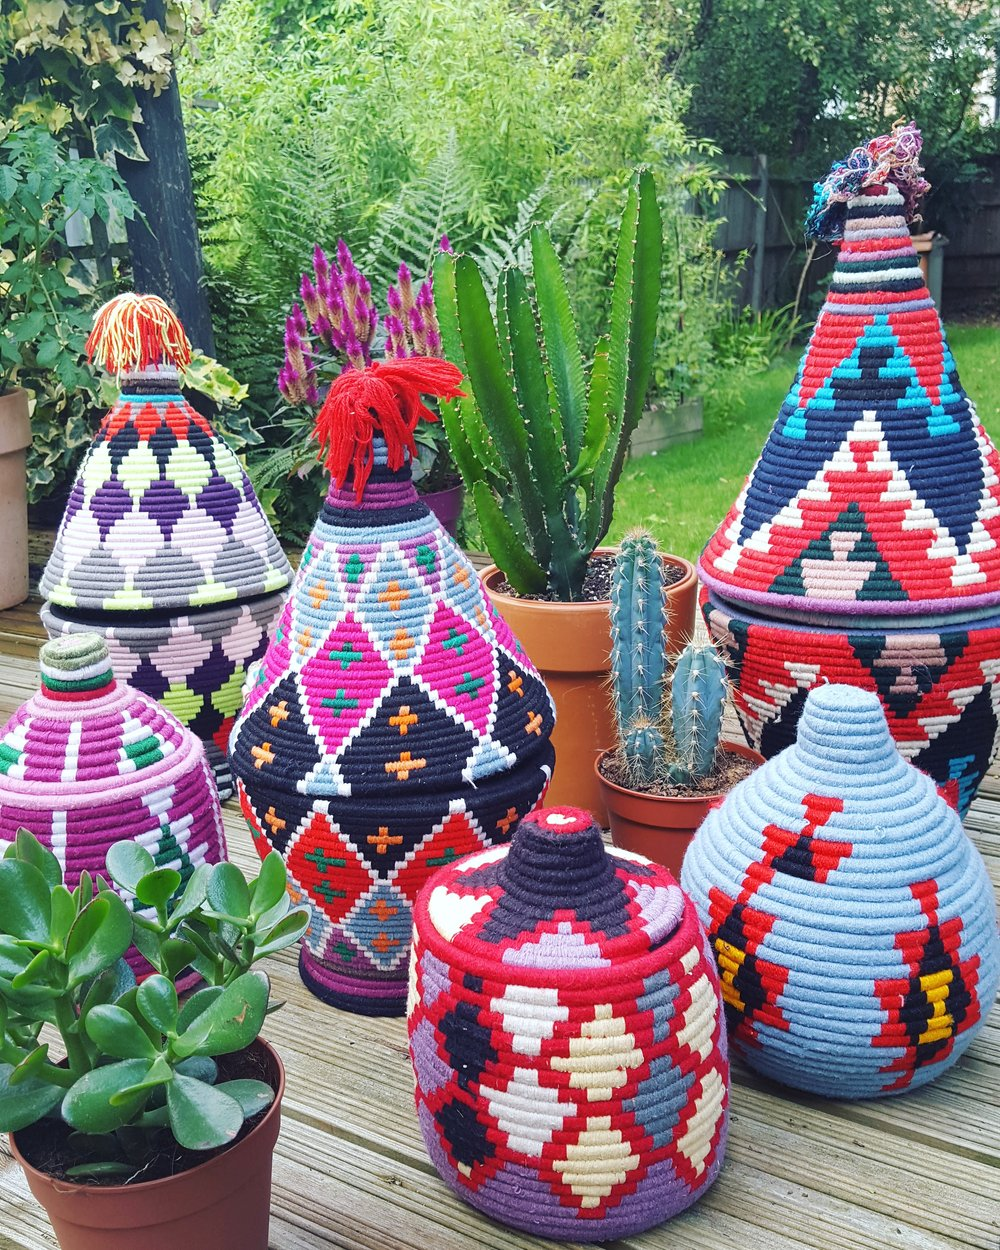 COLOURFUL BASKETS FROM MOROCCO